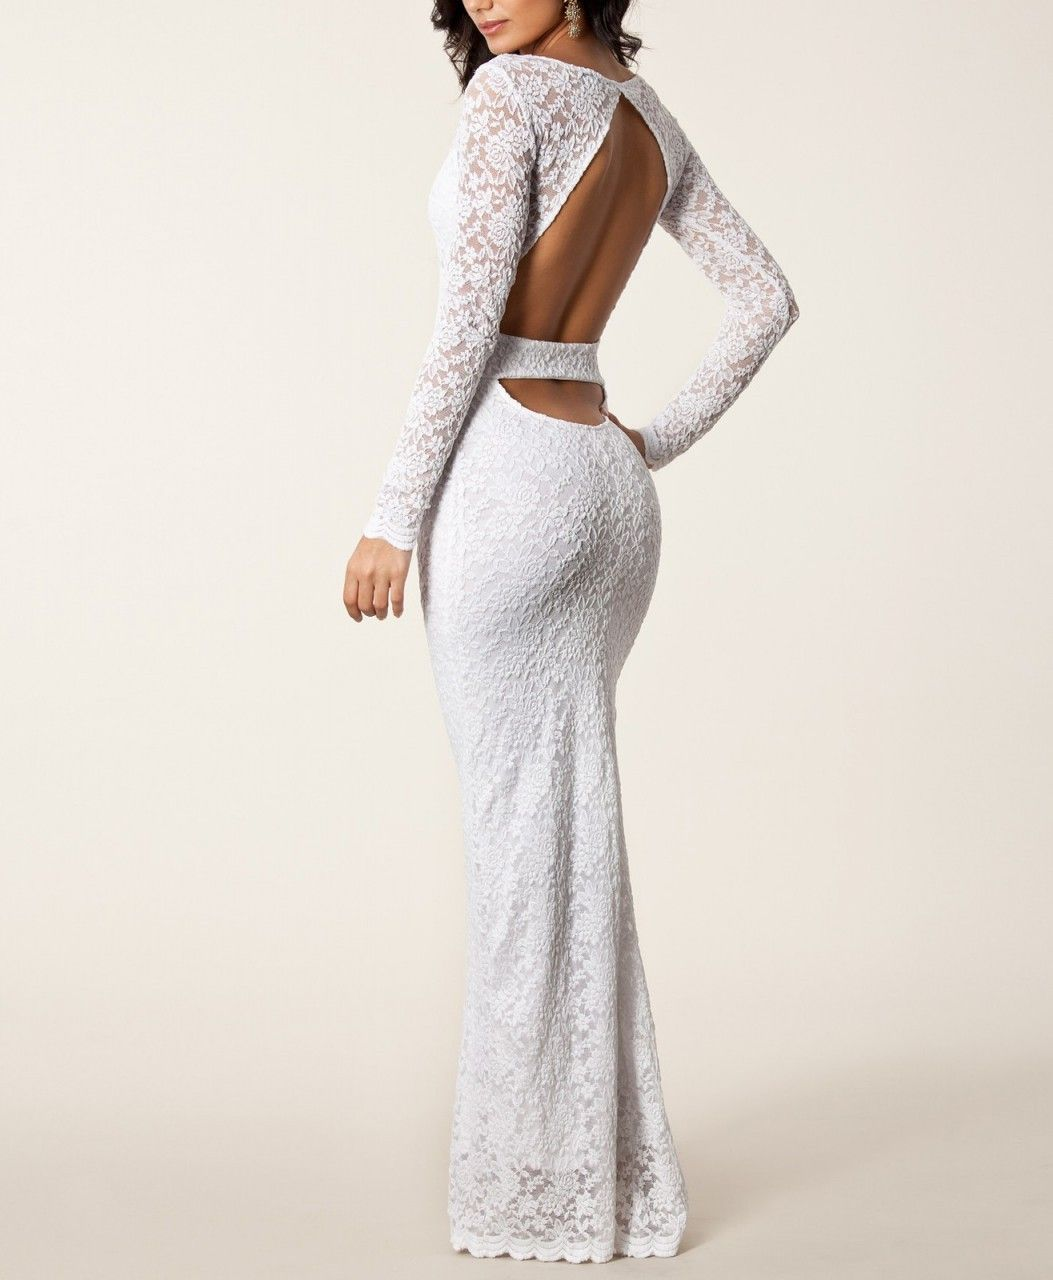 Italian Lace Couture Cut Out Maxi Dress   Maxi dresses, Couture and ...